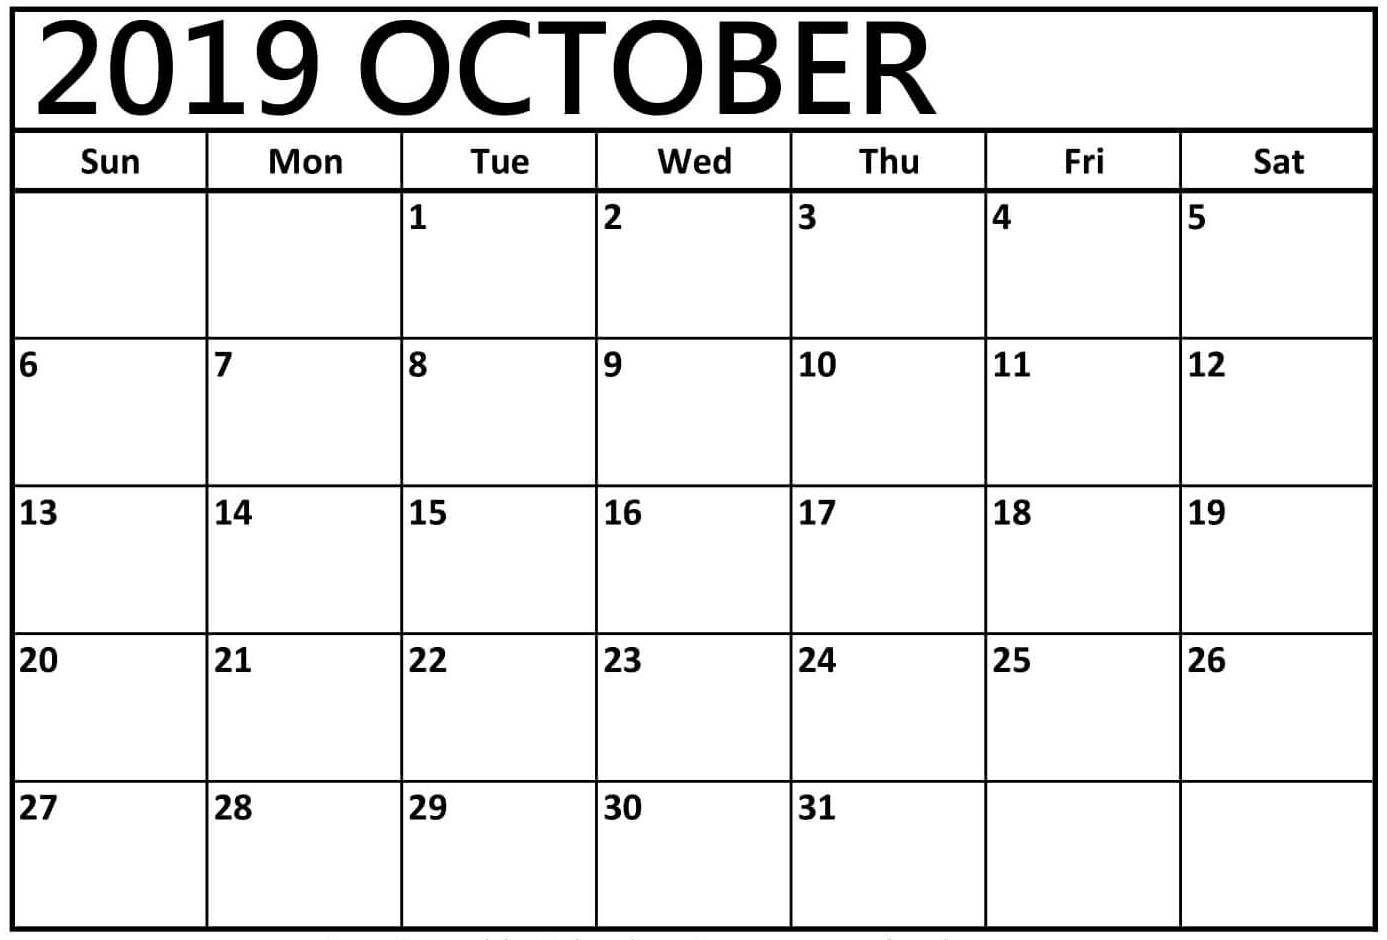 October 2019 Calendar Printable Word